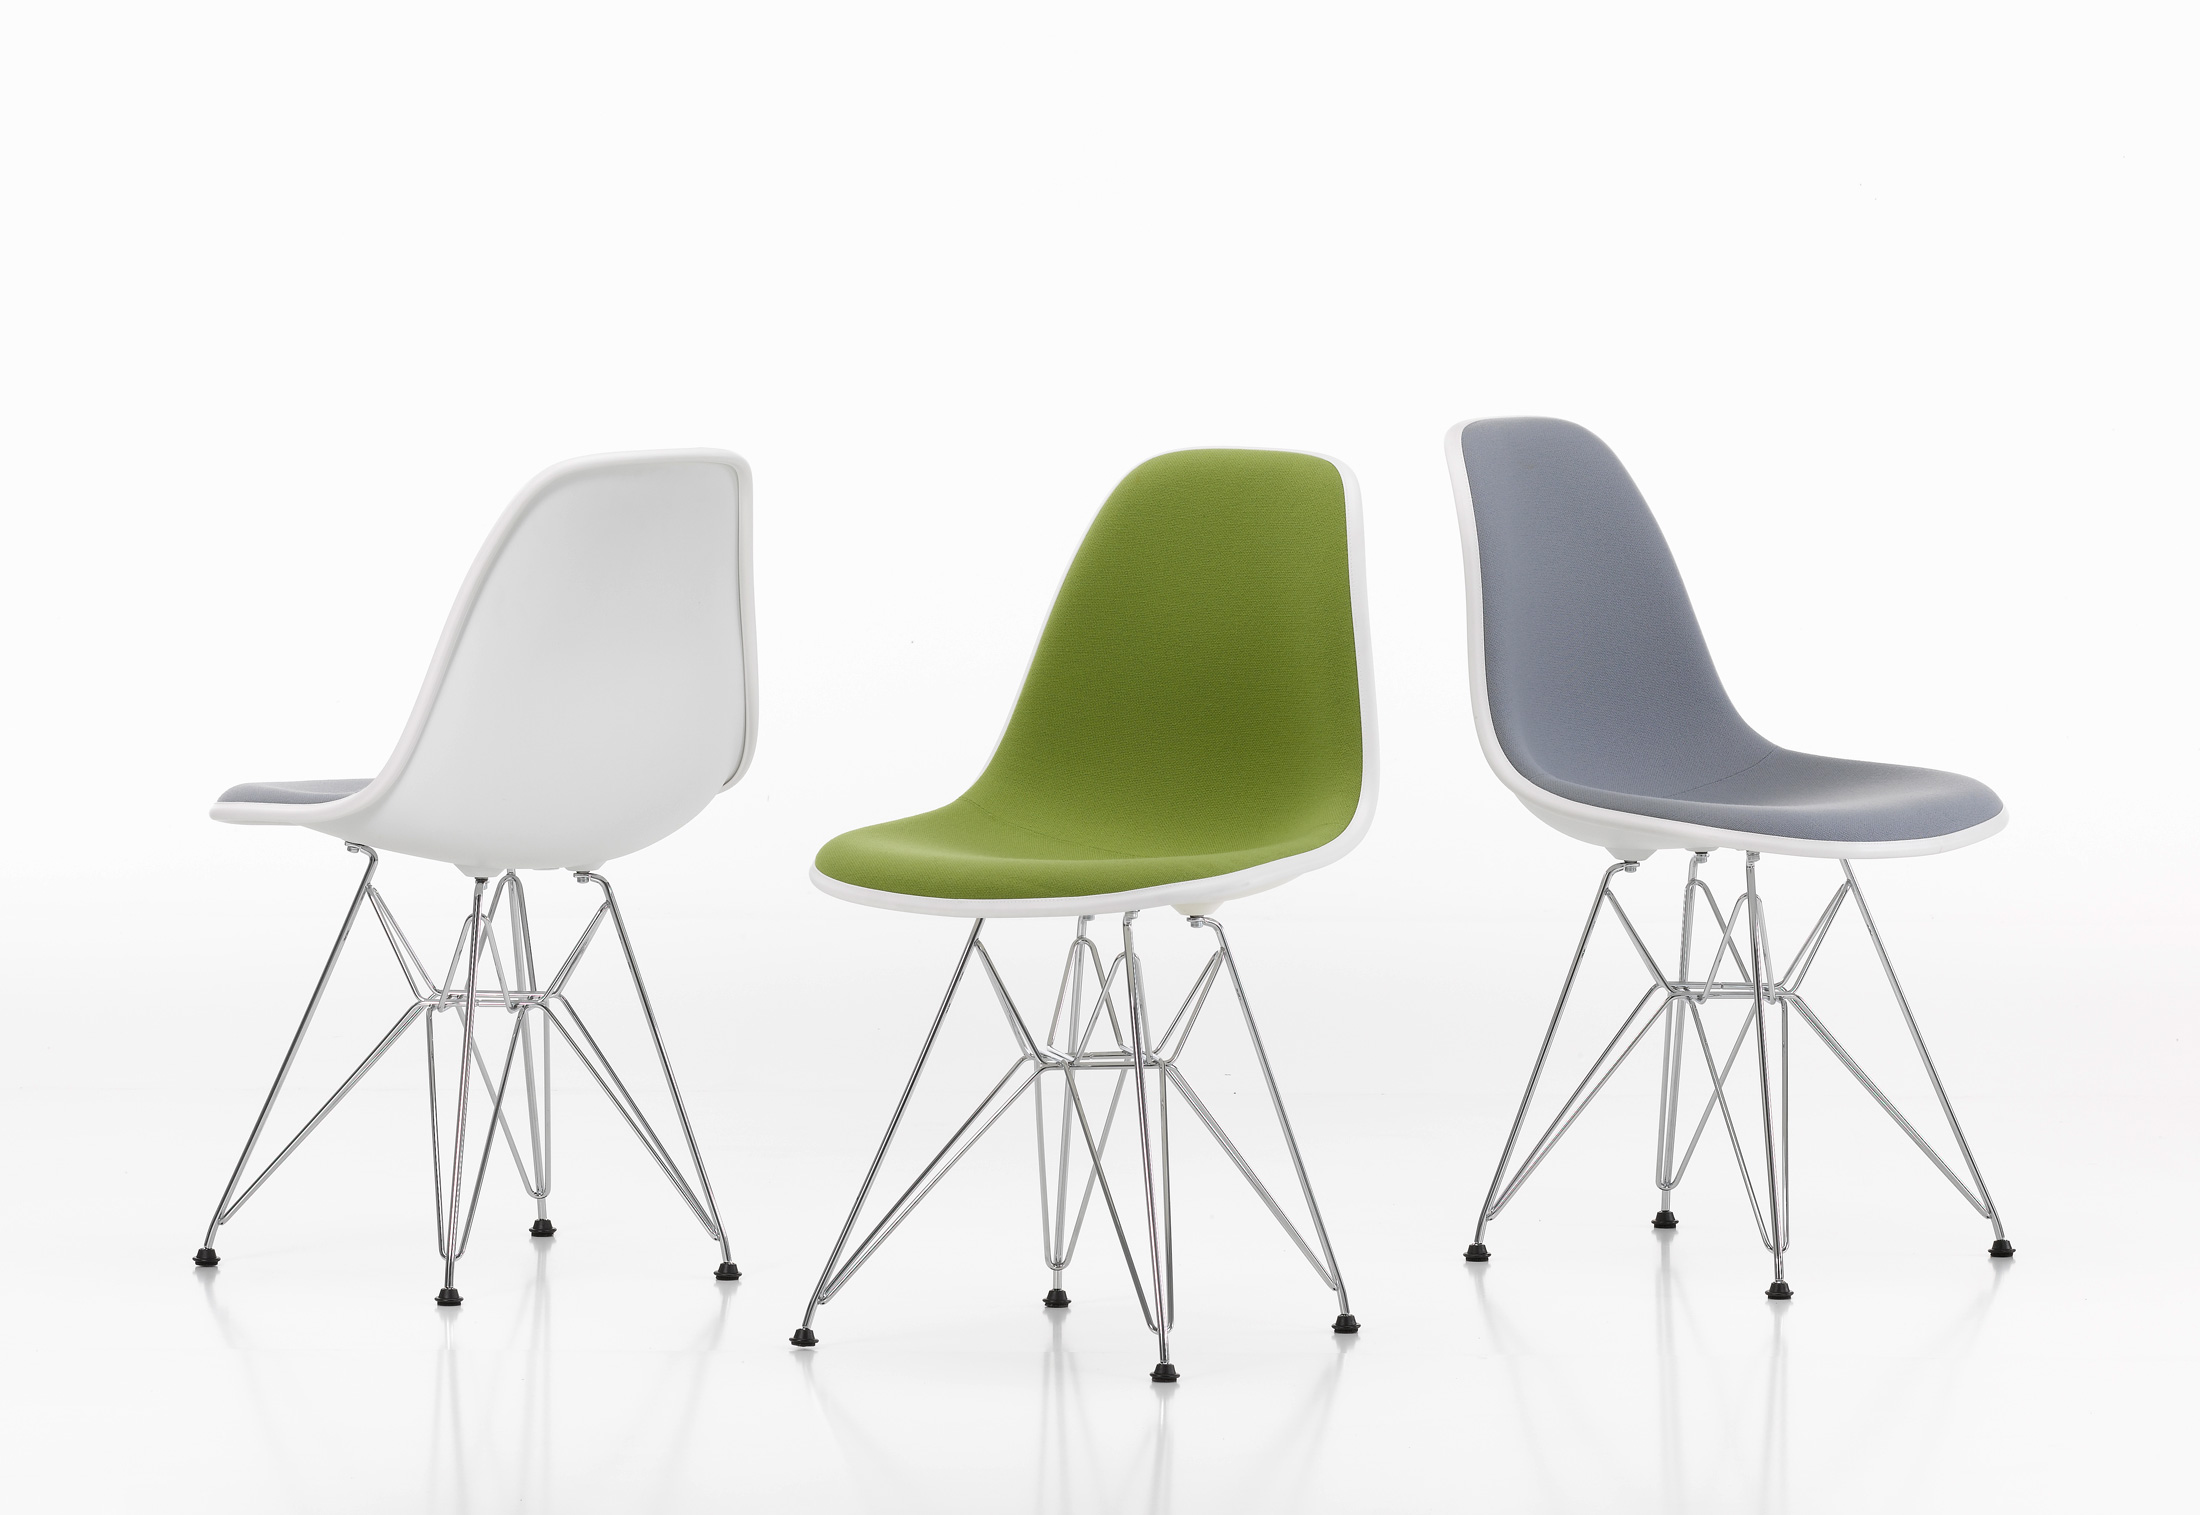 Eames plastic side chair dsr by vitra stylepark for Eames chair vitra replica